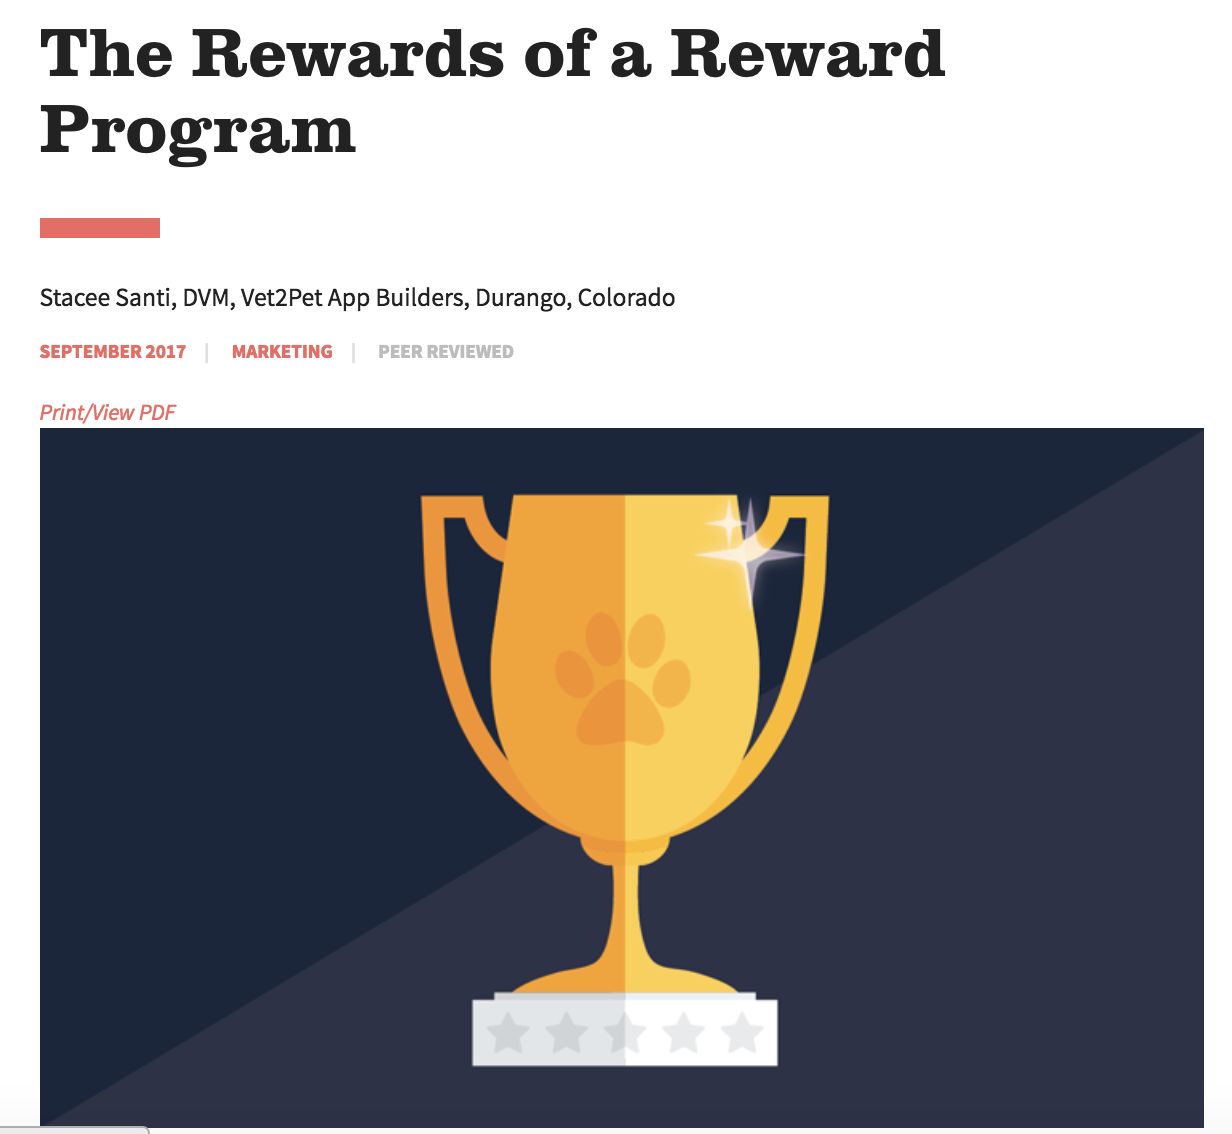 The Rewards of a Reward Program